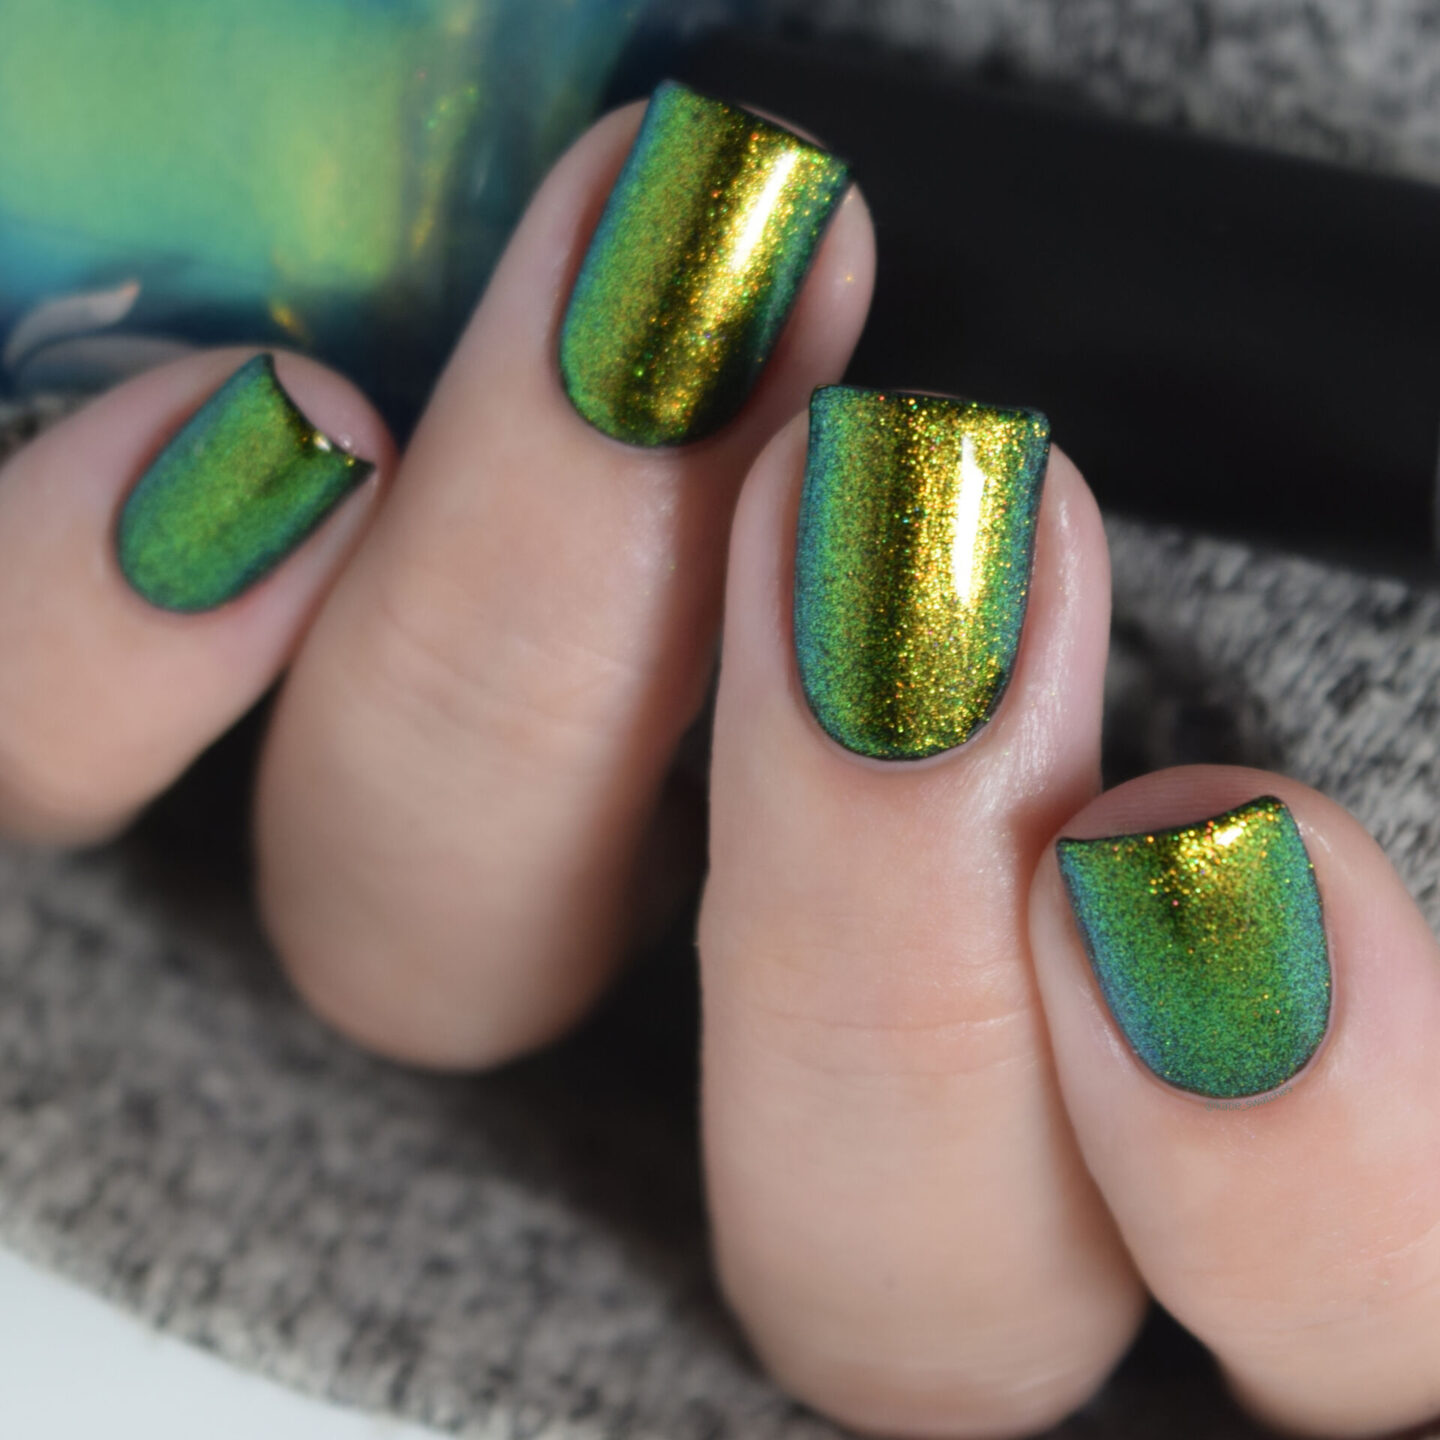 Ethereal Lacquer The Child blue green sheer shimmer nail polish swatch The Mandalorian themed Mystery nail polish